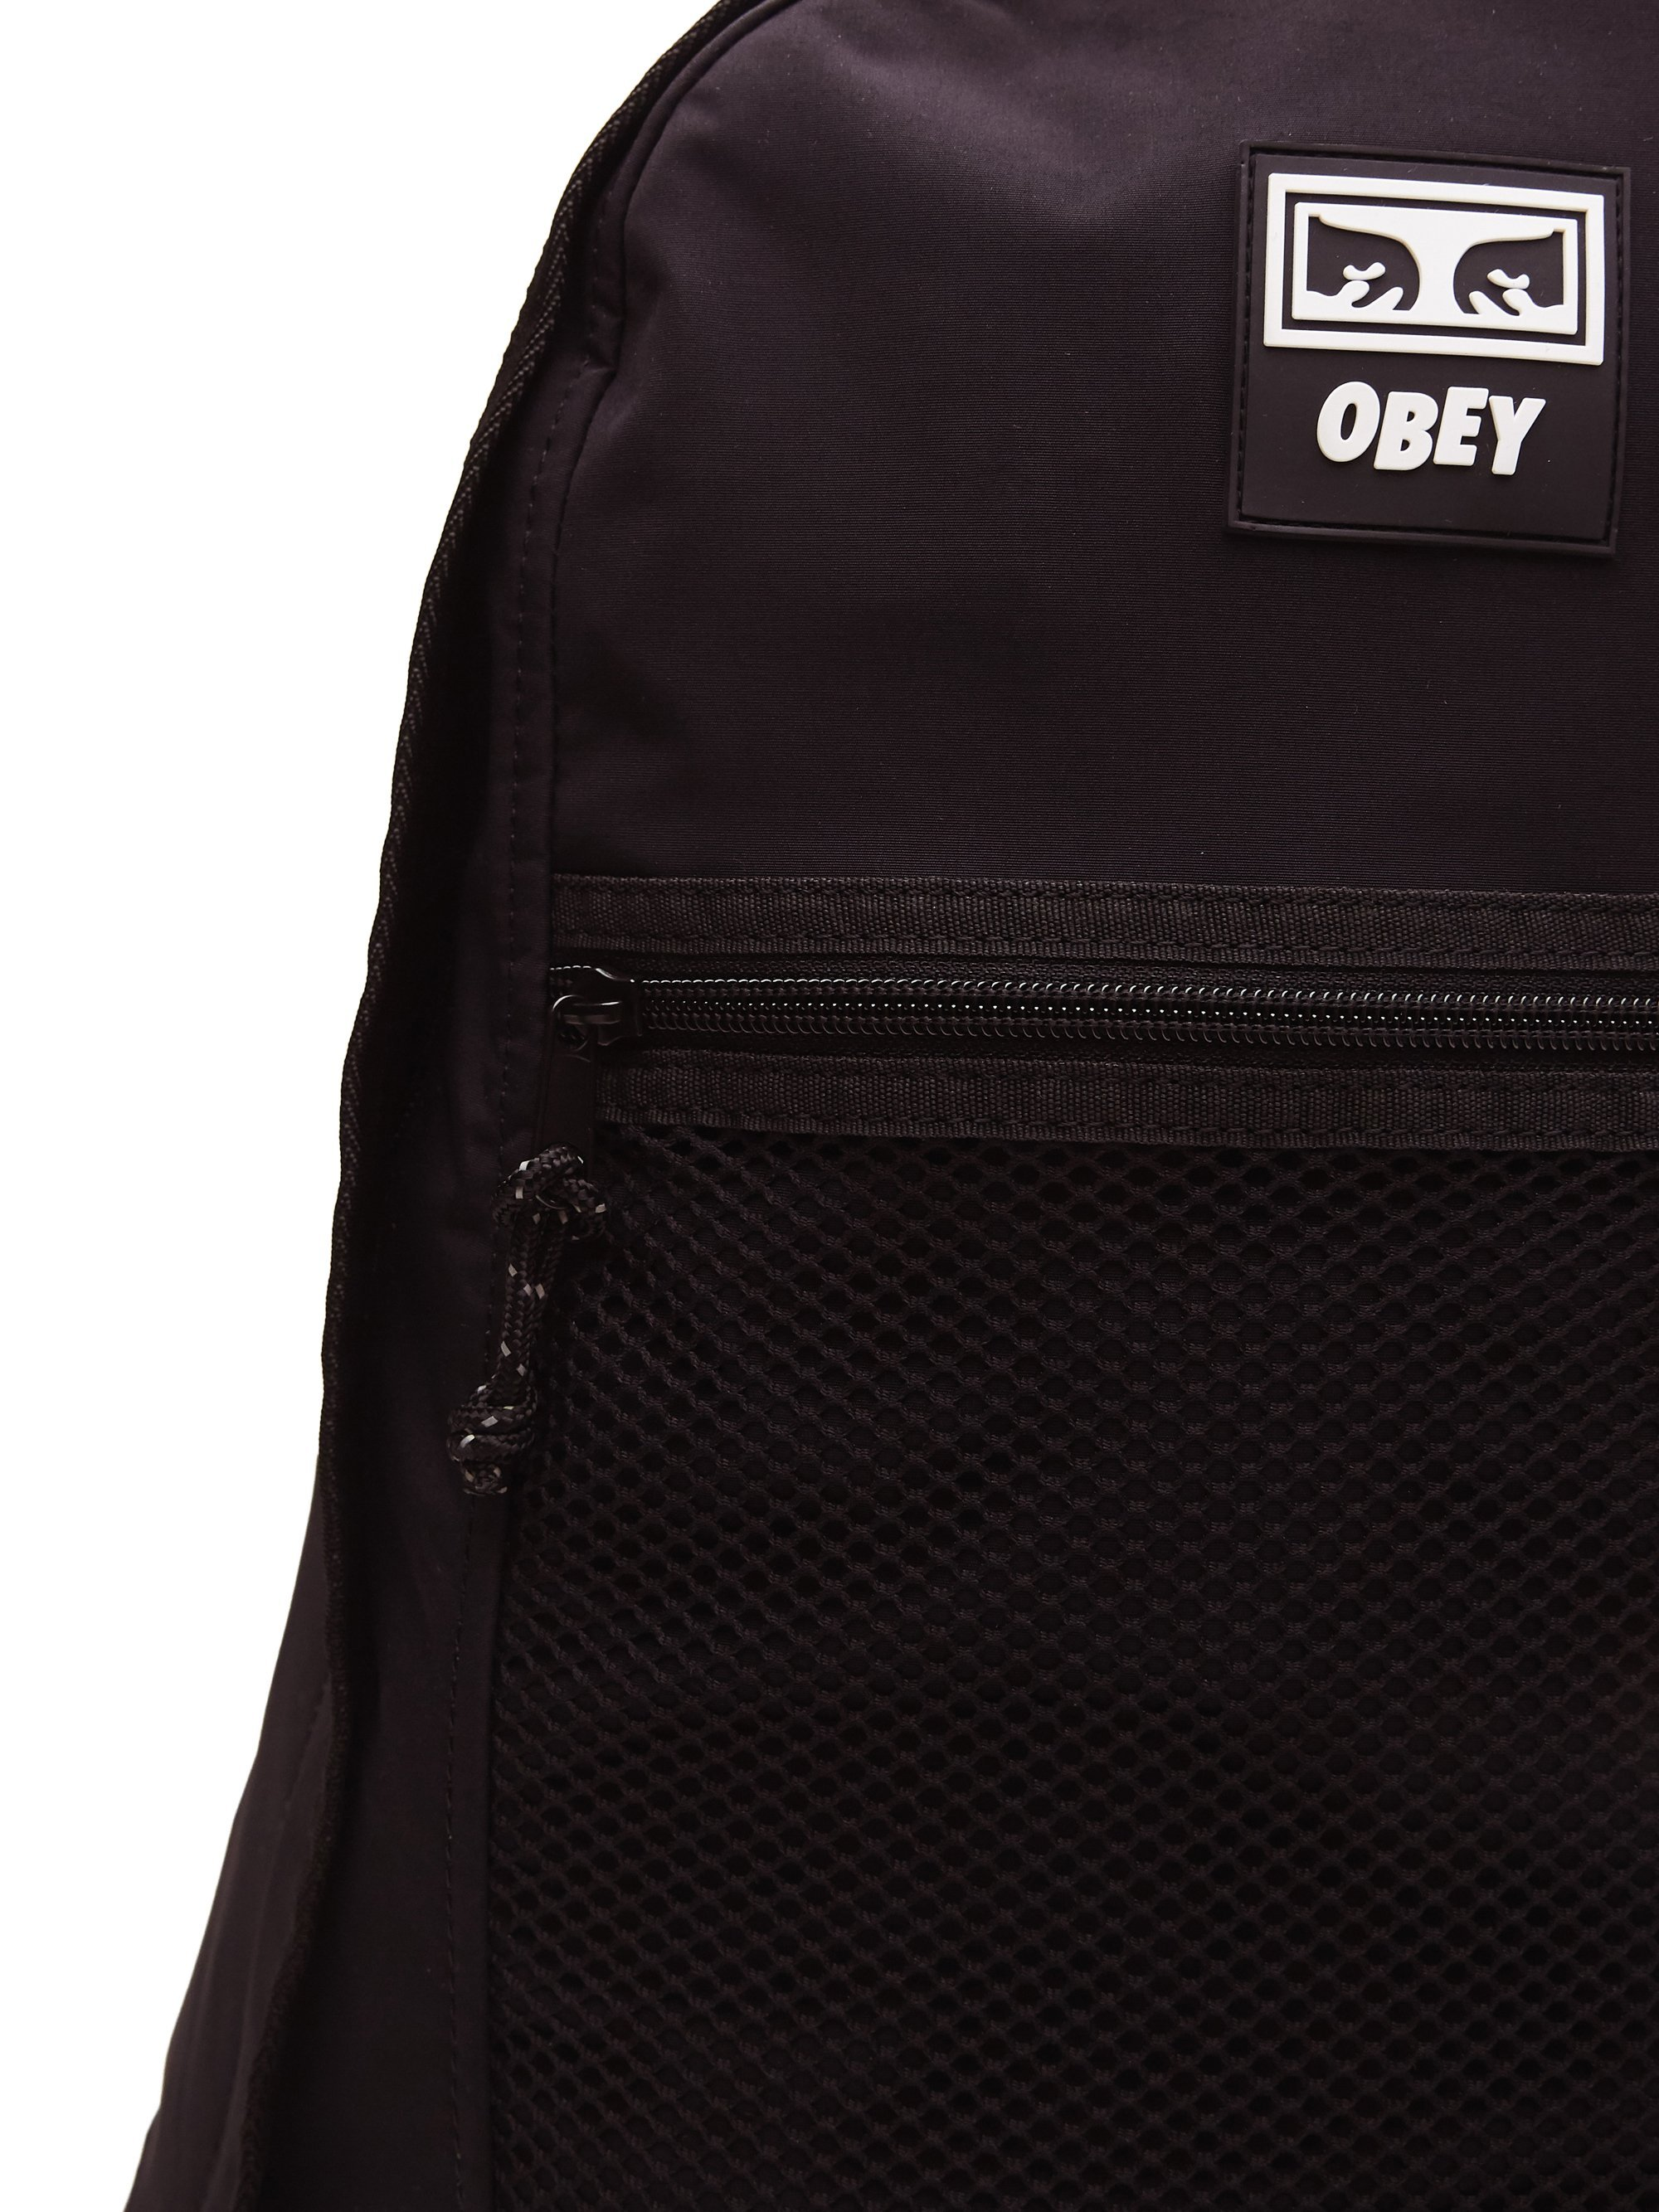 OBEY_Conditions_Day_Pack_100010107_BLK_4_2000x.jpg